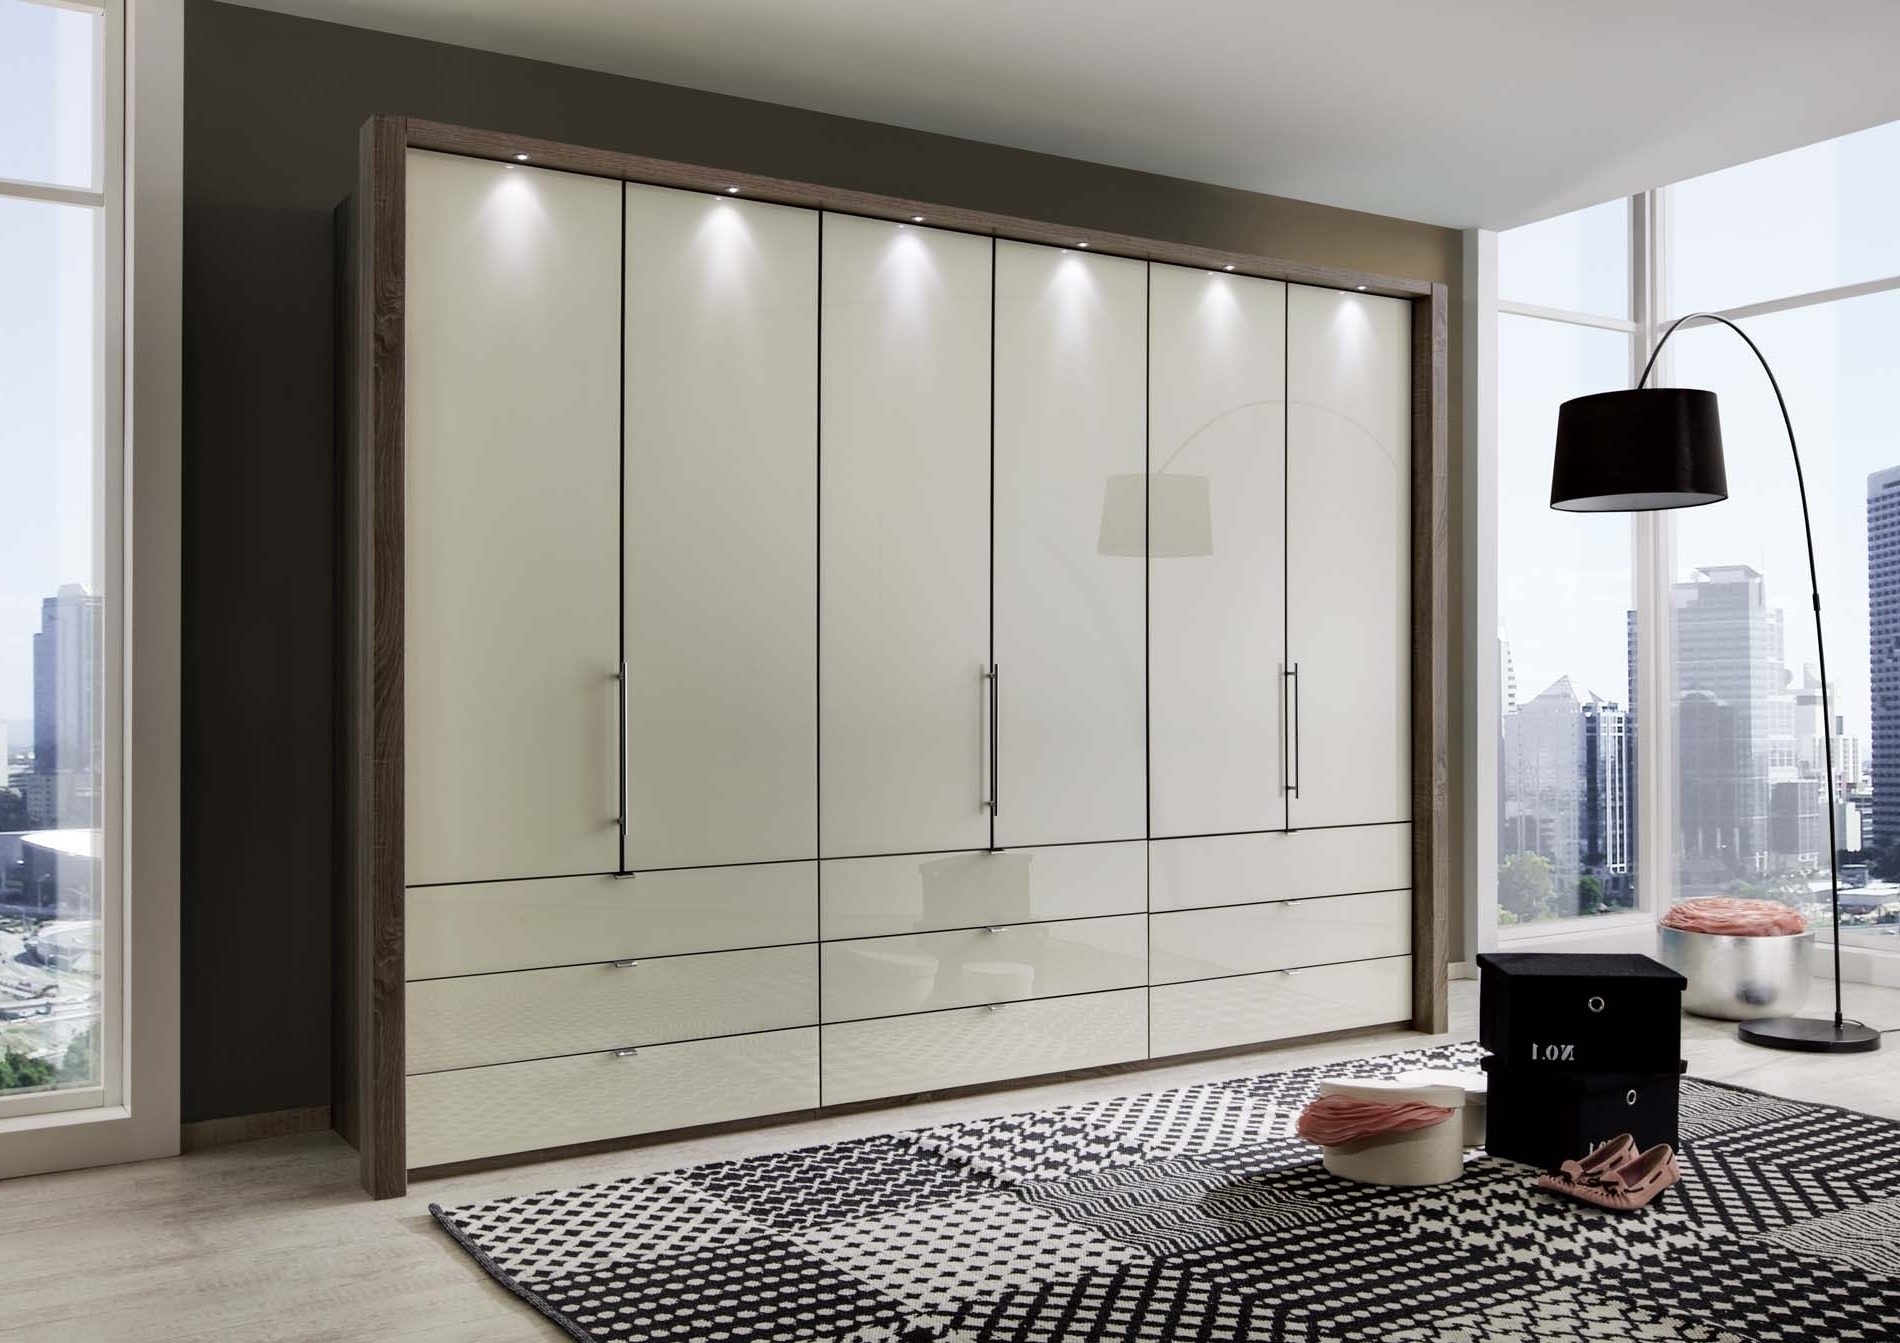 Home Decor & Furnitures In Most Recently Released 6 Door Wardrobes Bedroom Furniture (View 10 of 15)